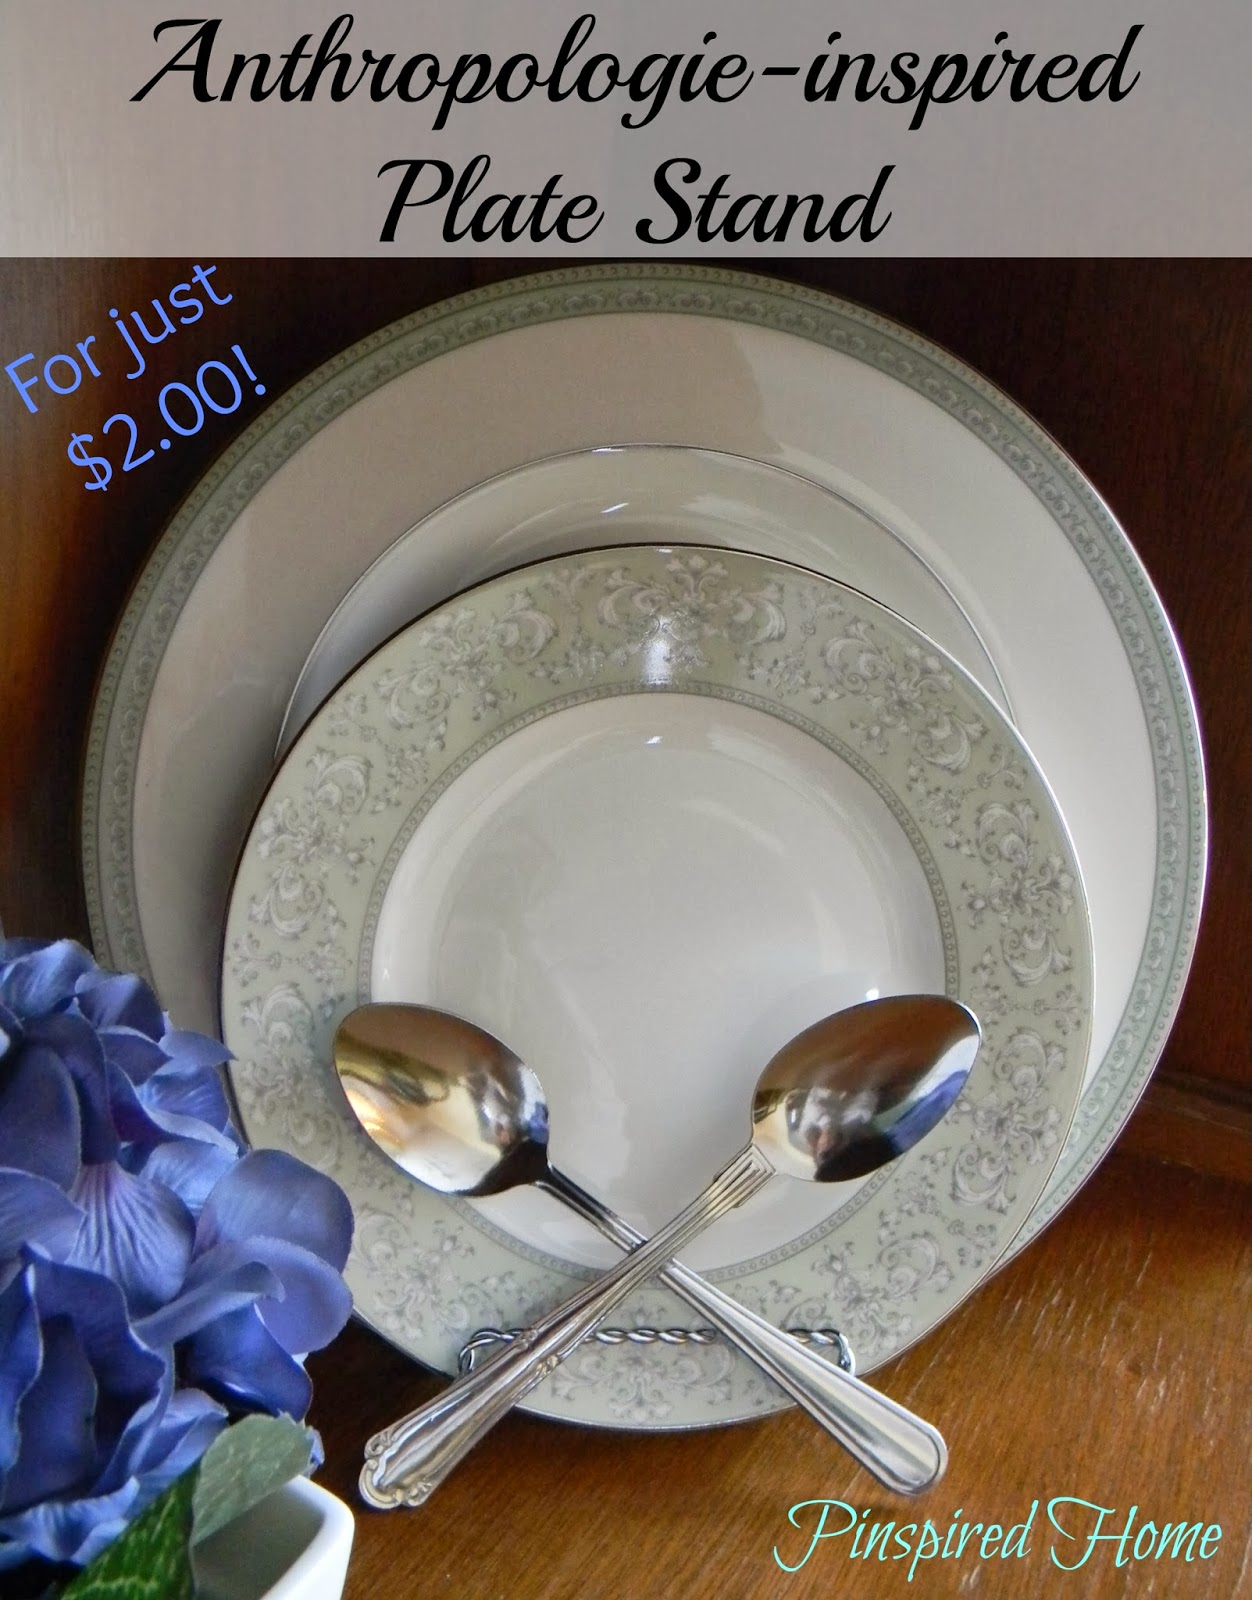 http://pinspiredhome.blogspot.com/2014/02/anthro-inspired-plate-stand-for-2.html